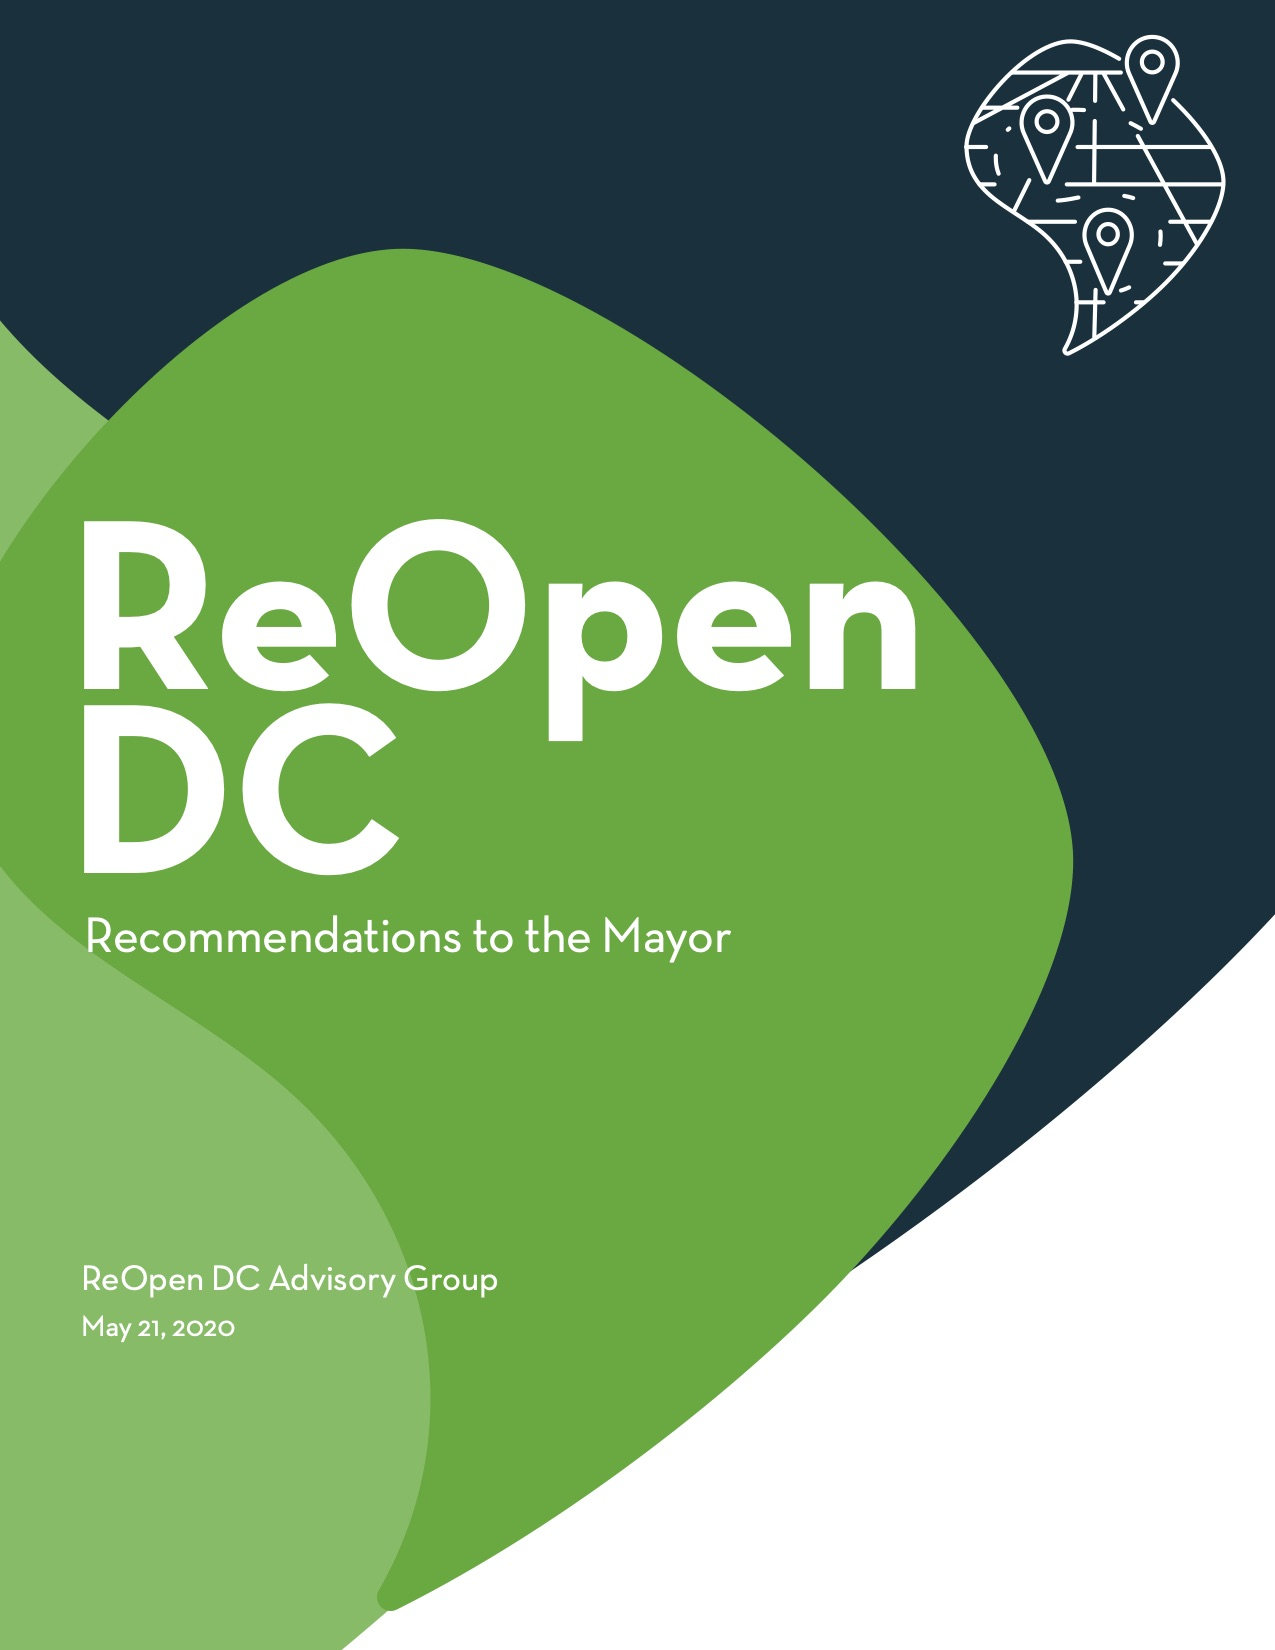 ReOpen DC Recommendations